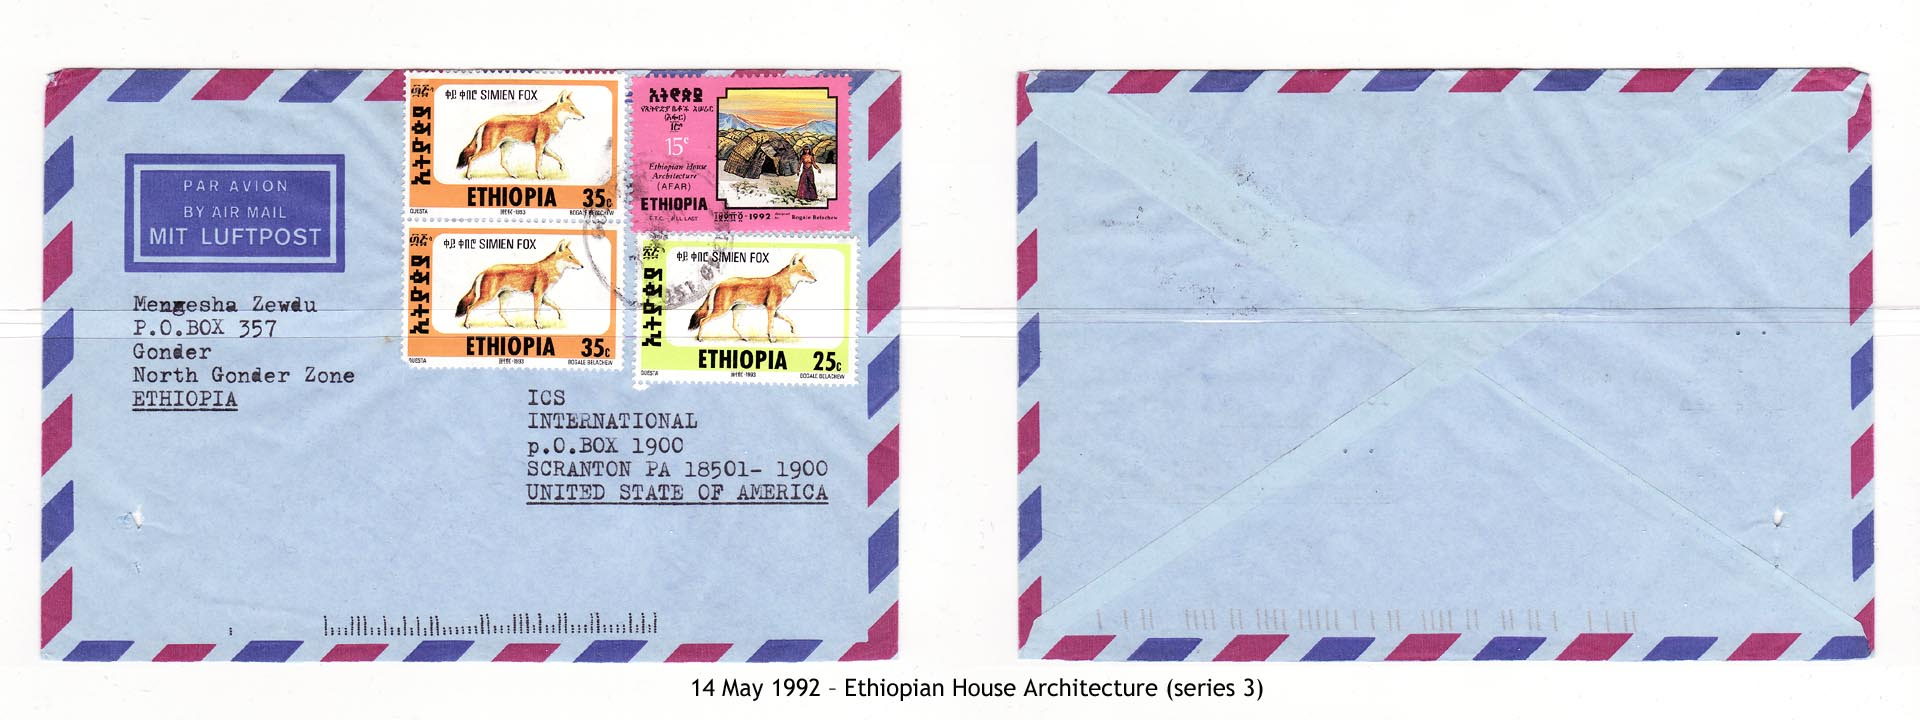 19920514 – Ethiopian House Architecture (series 3)